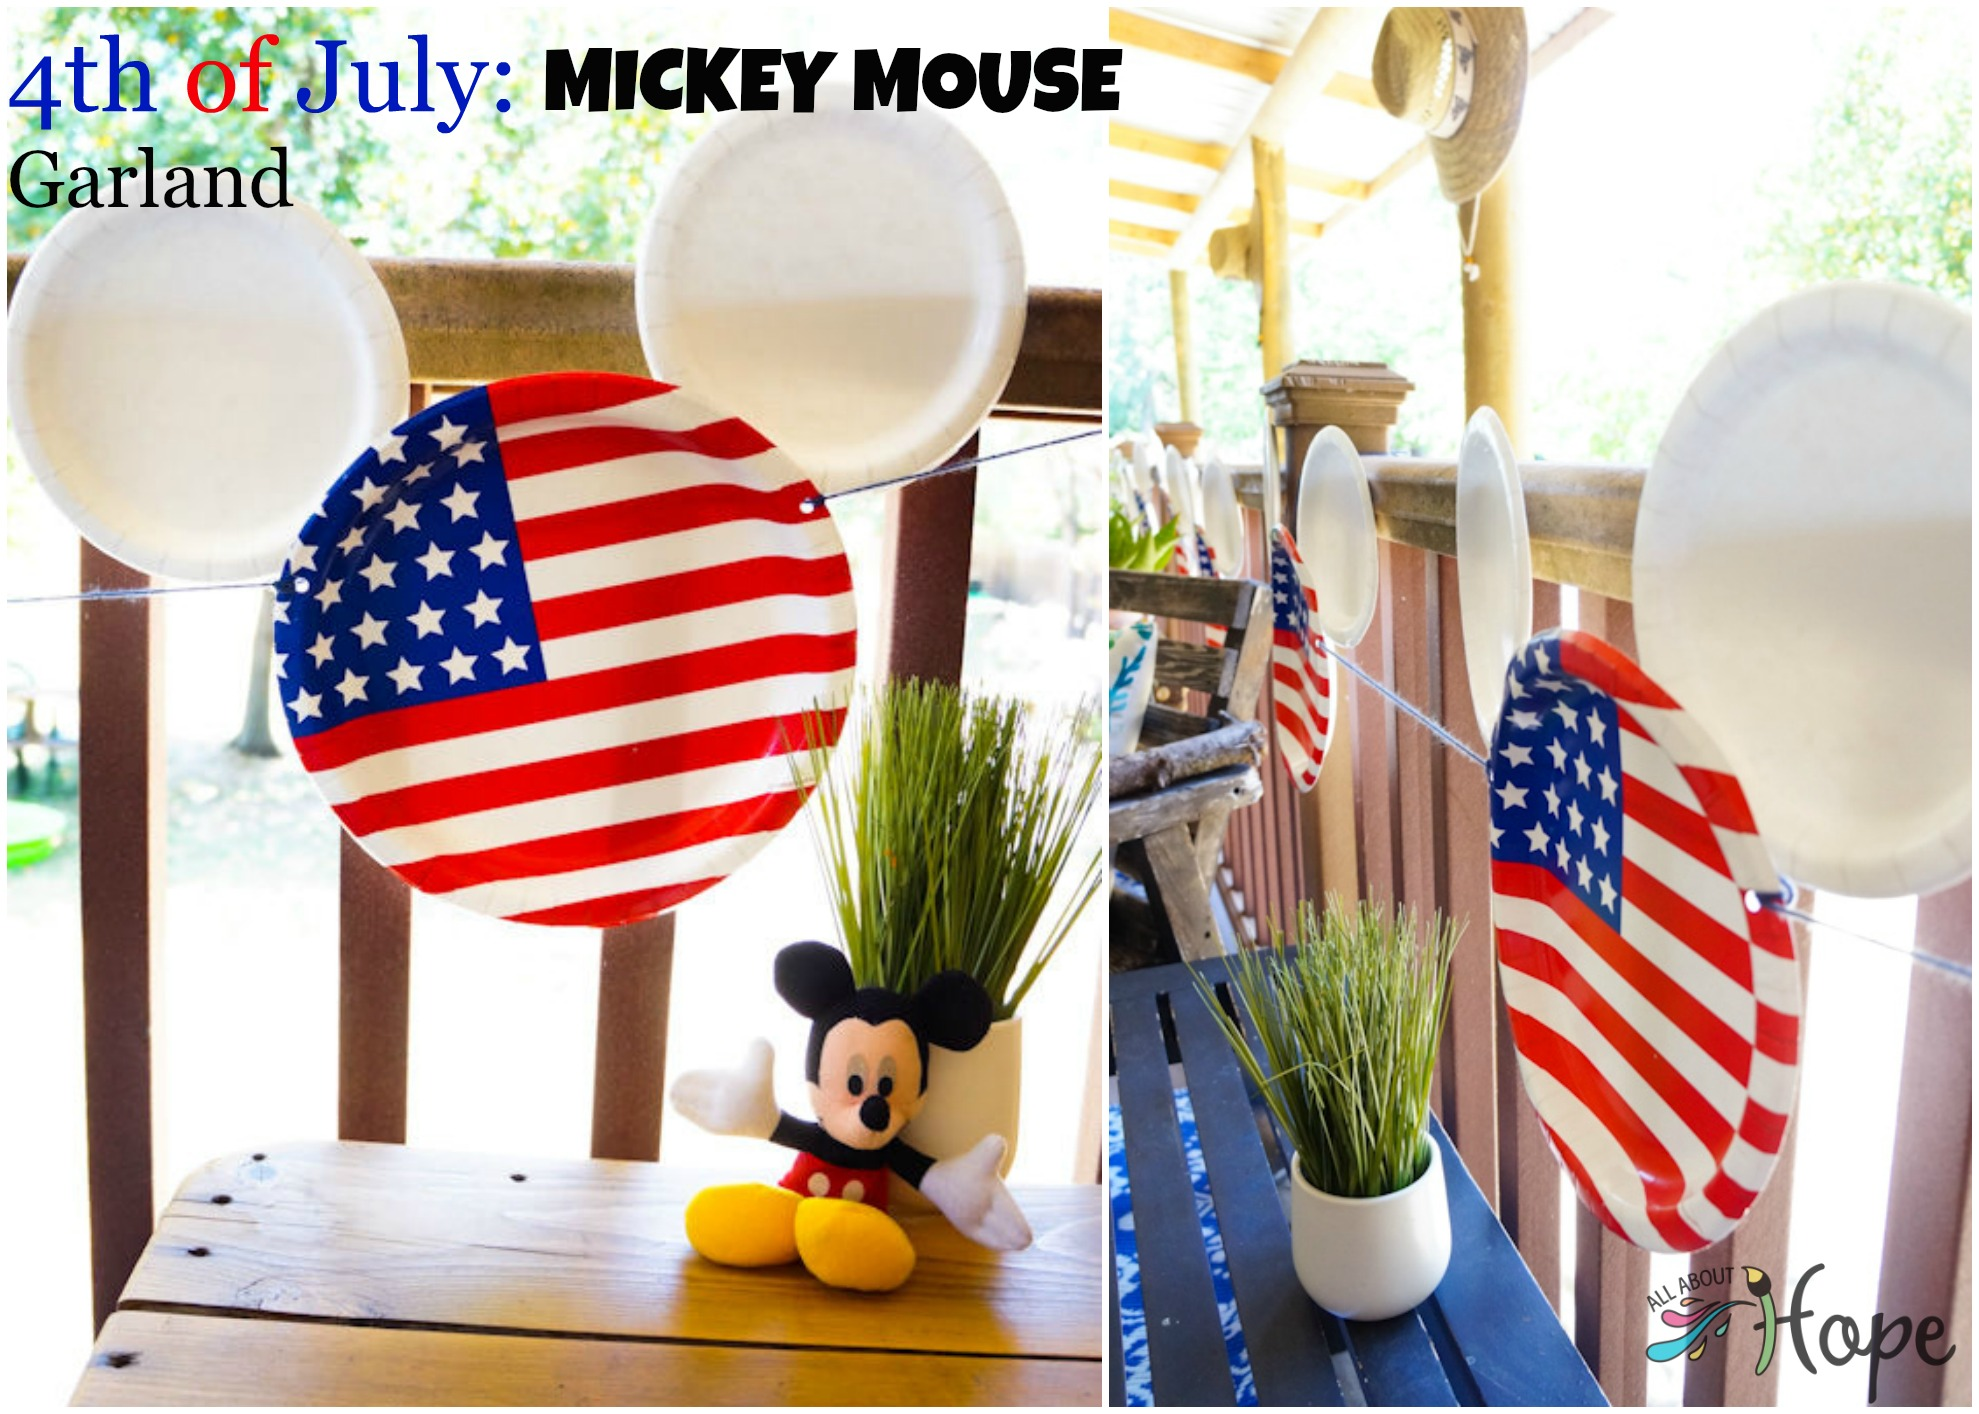 Mickey Garland, Mickey Mouse Garland, 4th of July Garland, DIY Garland, Cheap Decor, Easy 4th of July Decor, Party Plate Decoration,